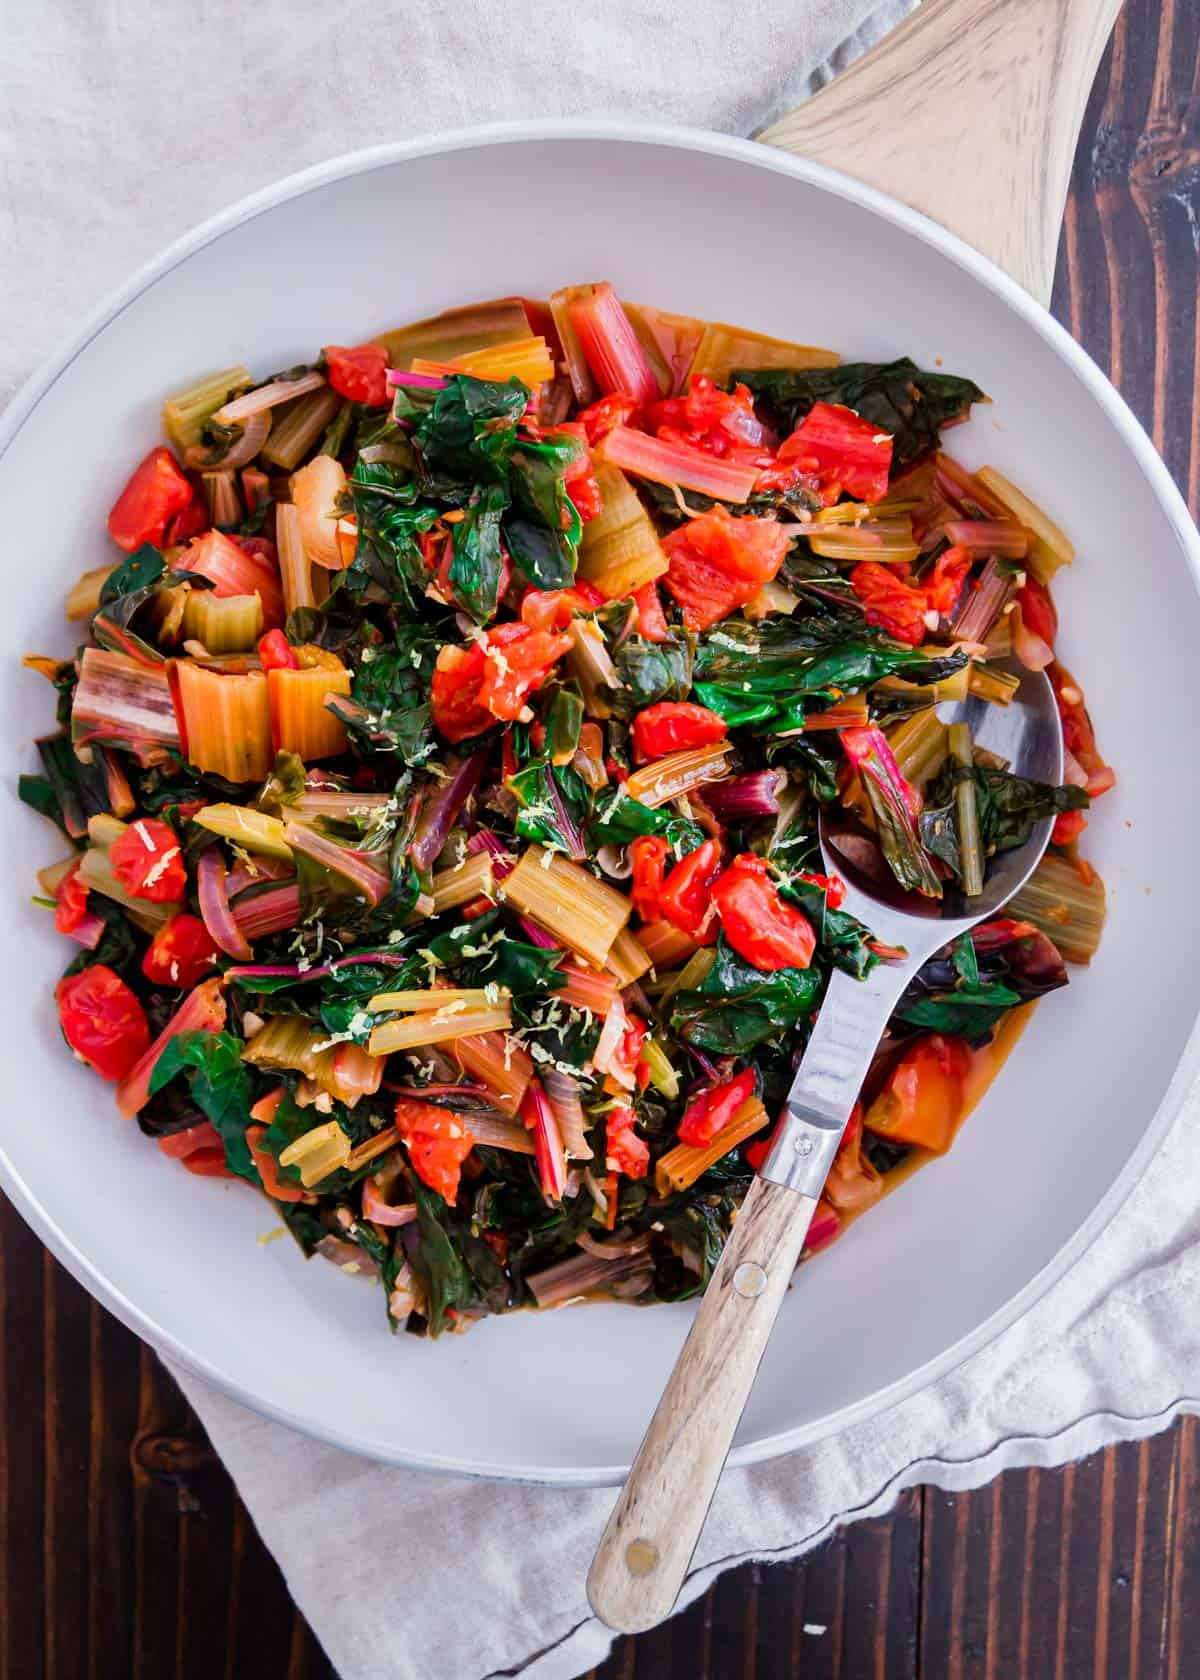 A simple recipe for sautéed Swiss chard with garlic, onions, tomatoes and lemon. Garnished with some optional fresh parmesan cheese and easily made in a pot or skillet. It's a low-calorie, vegetarian healthy side dish packed with all the nutrients from fresh leafy greens.